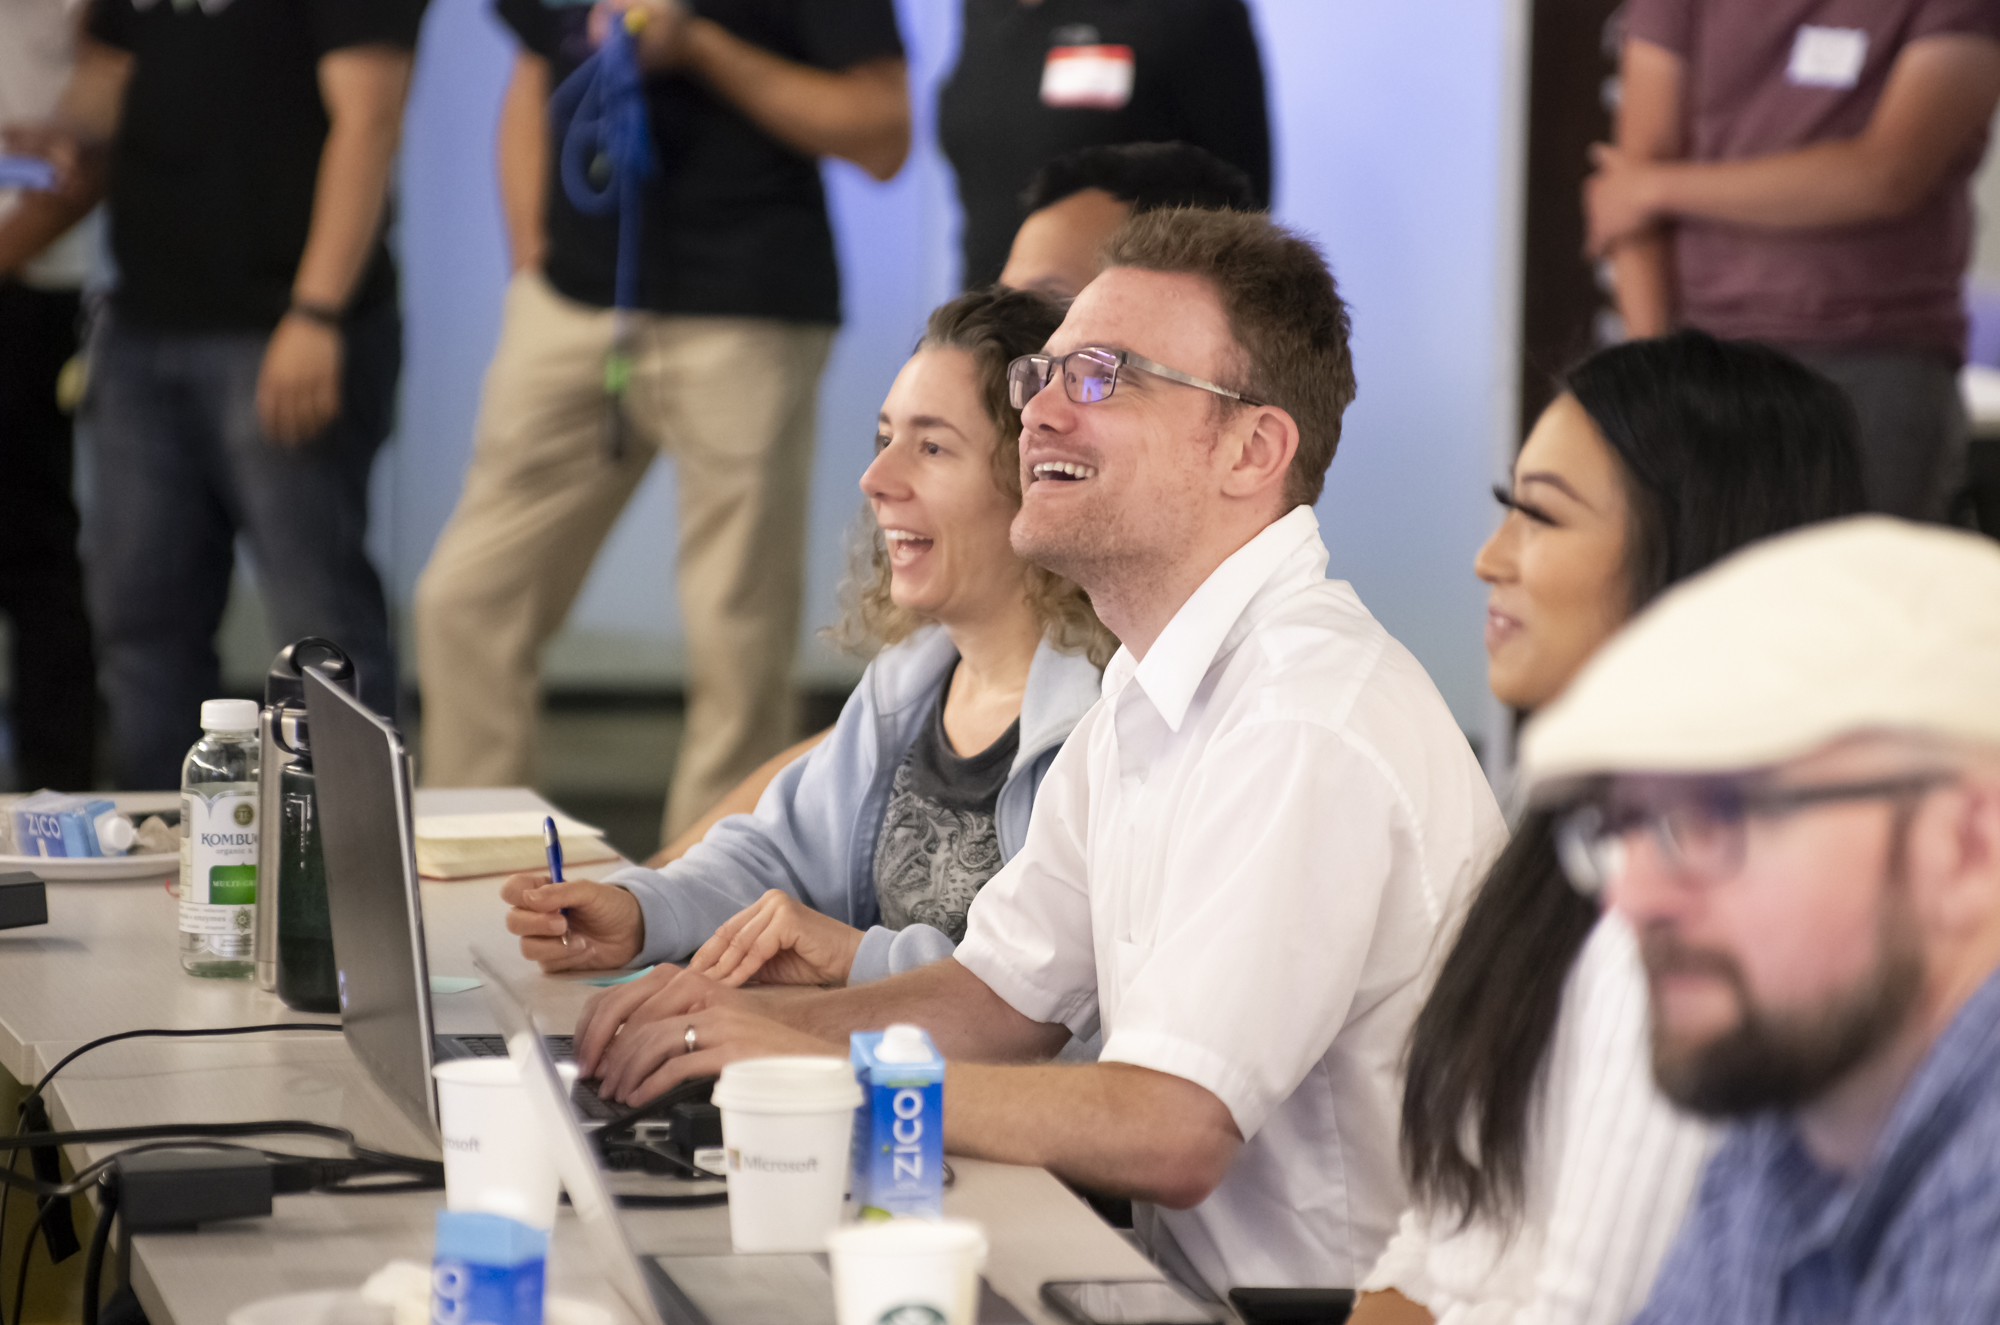 Corporate Hackathons: Bringing Companies and Communities Together, For Good